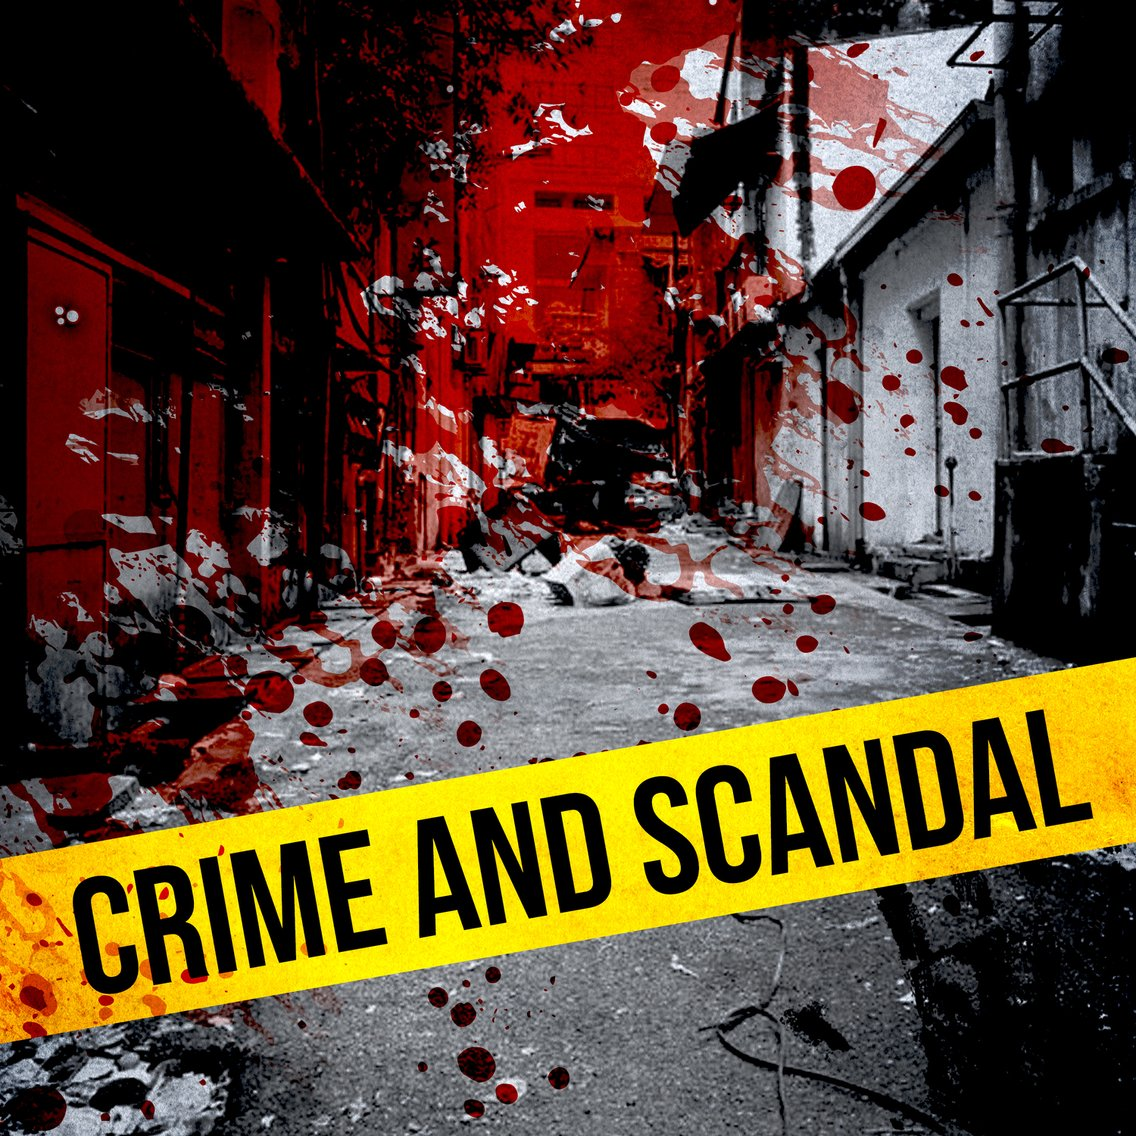 Crime and Scandal - Cover Image